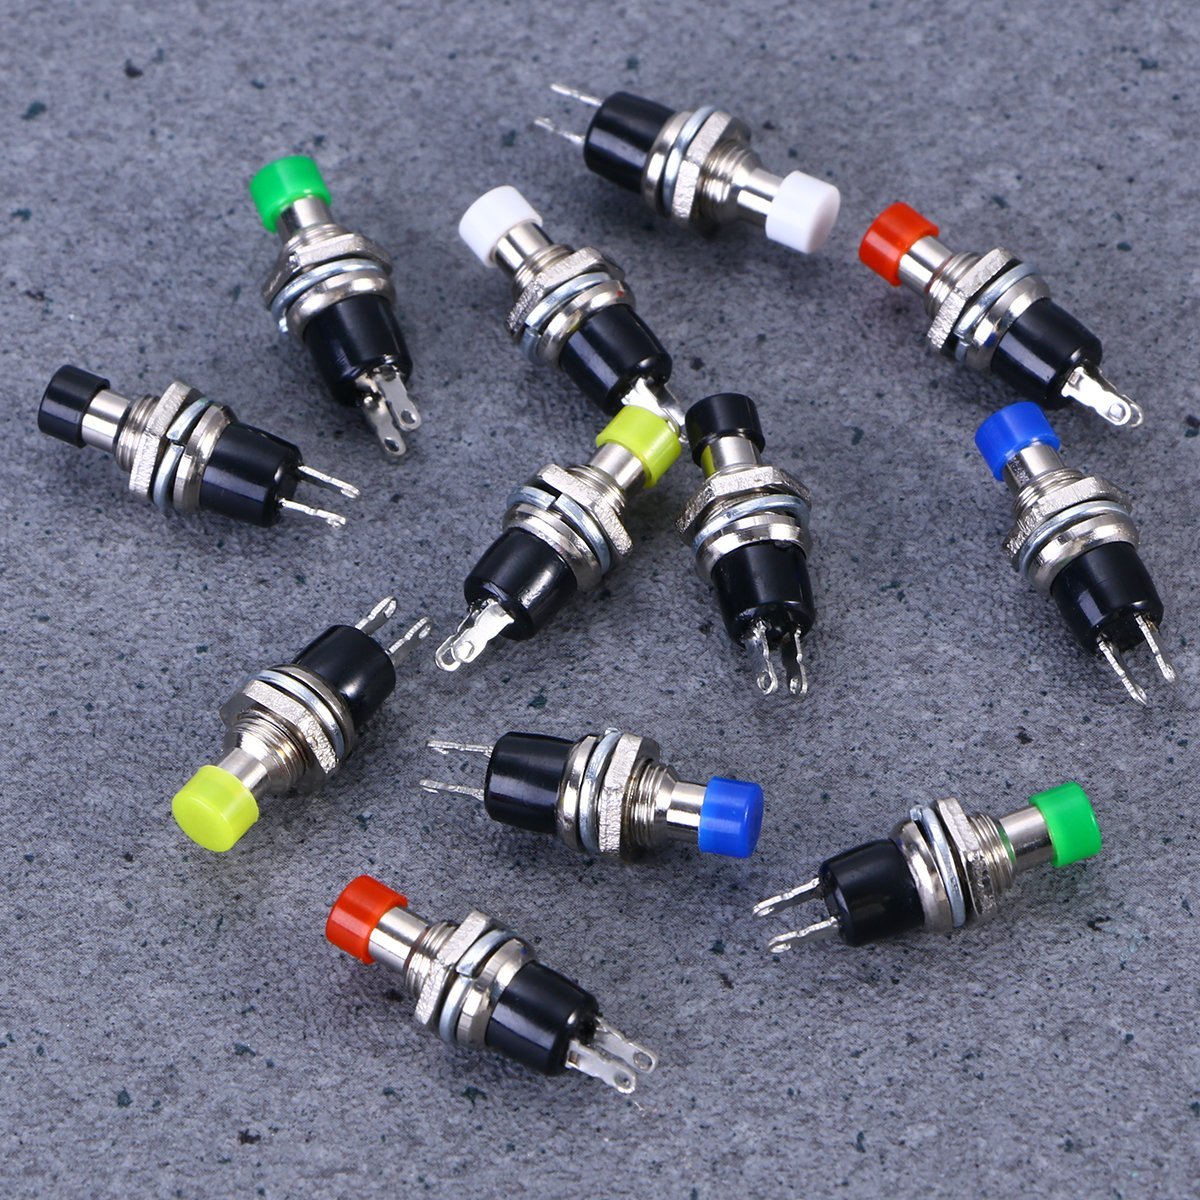 UEETEK 12Pcs 7MM Mounting Hole 1A 250V AC 2 Pins OFF//ON Thread SPST Momentary Latching Mini Push Button Switch Red, Green, Yellow, Blue, White, Black